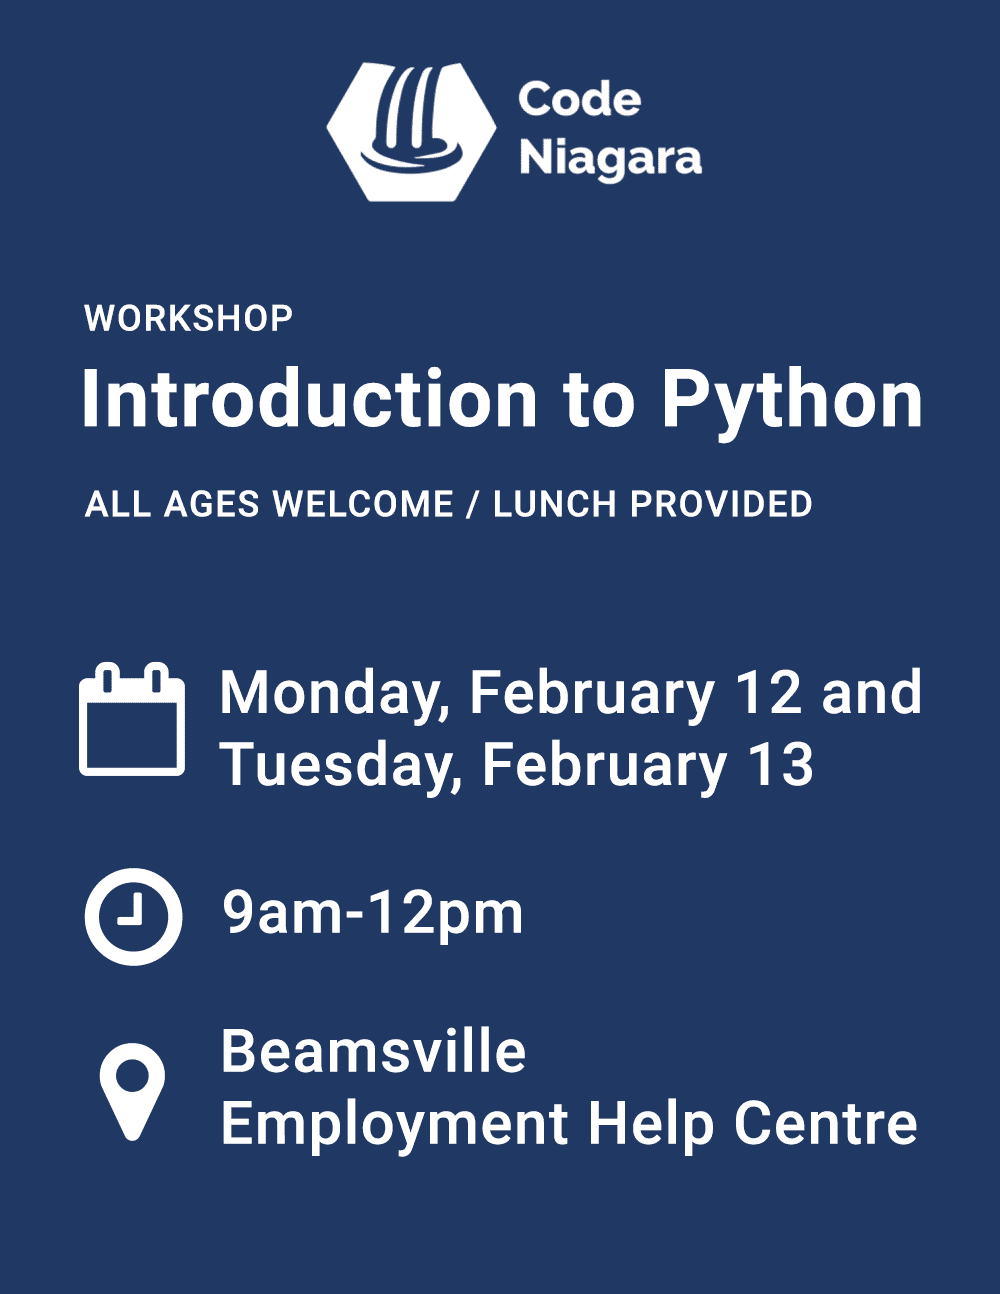 Introduction to Python Workshop Flyer